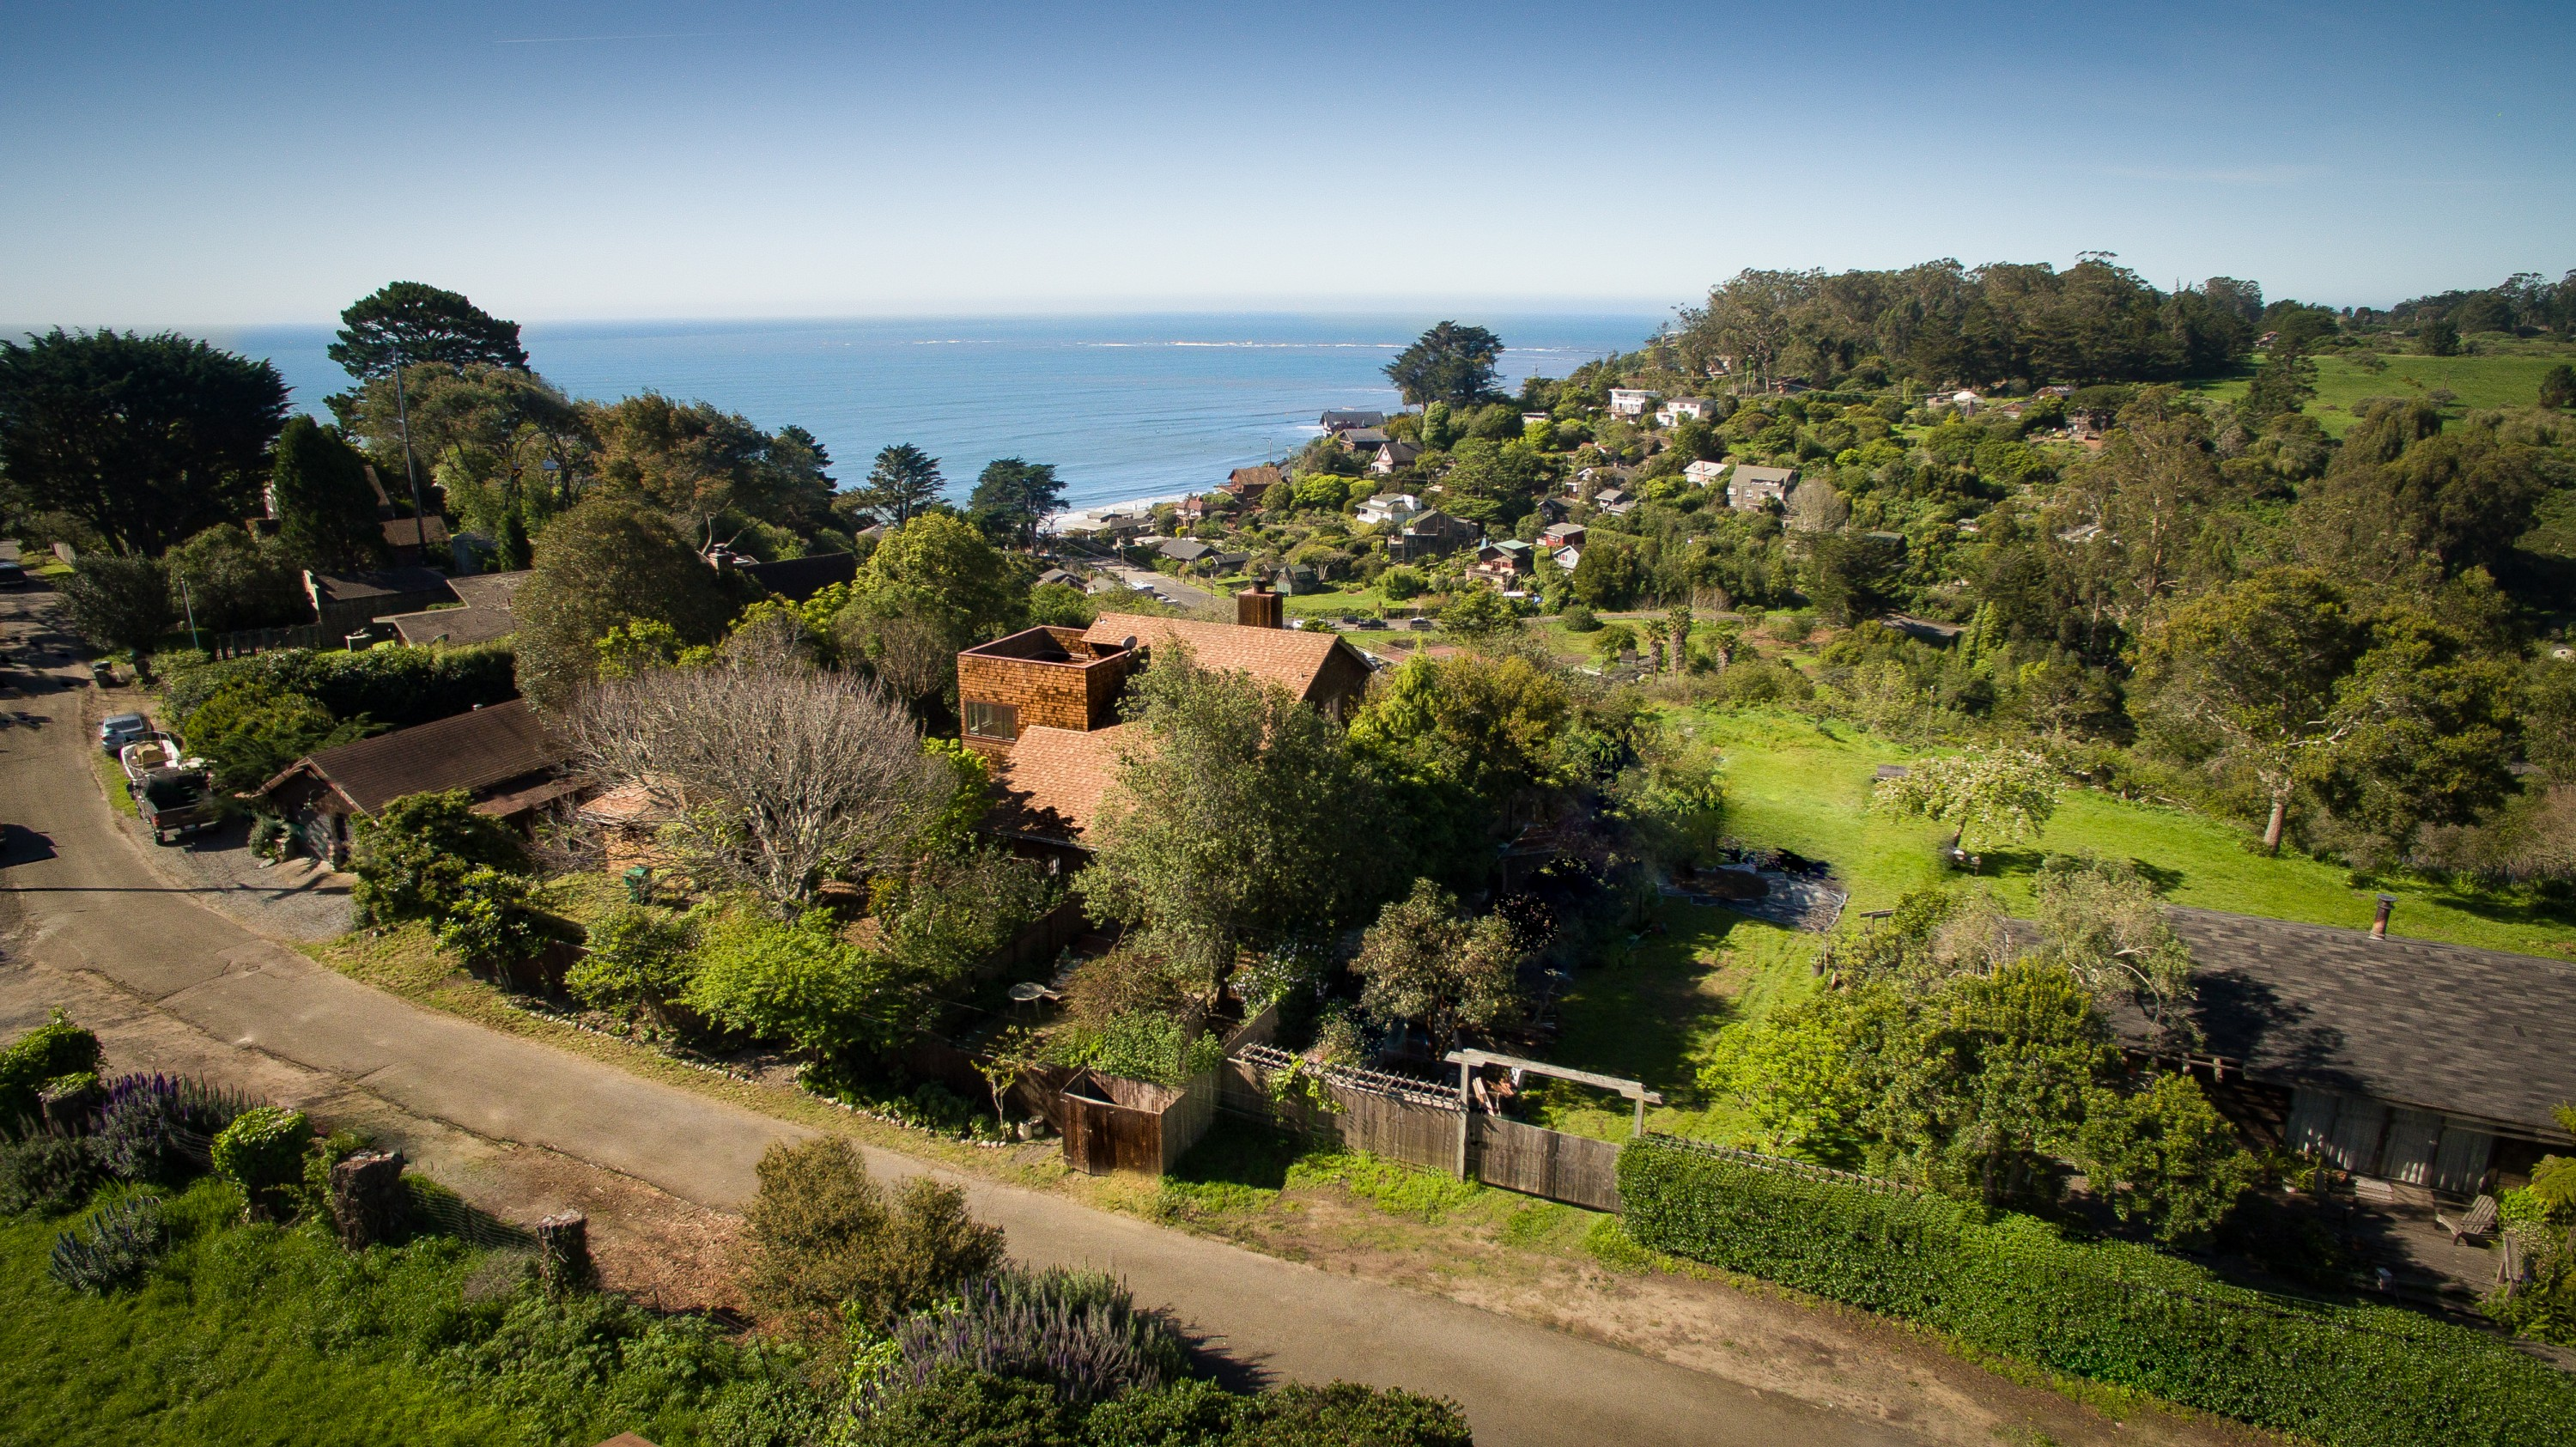 Single Family Home for Sale at What do you hear when you listen 46 Crescente Avenue Bolinas, California, 94924 United States